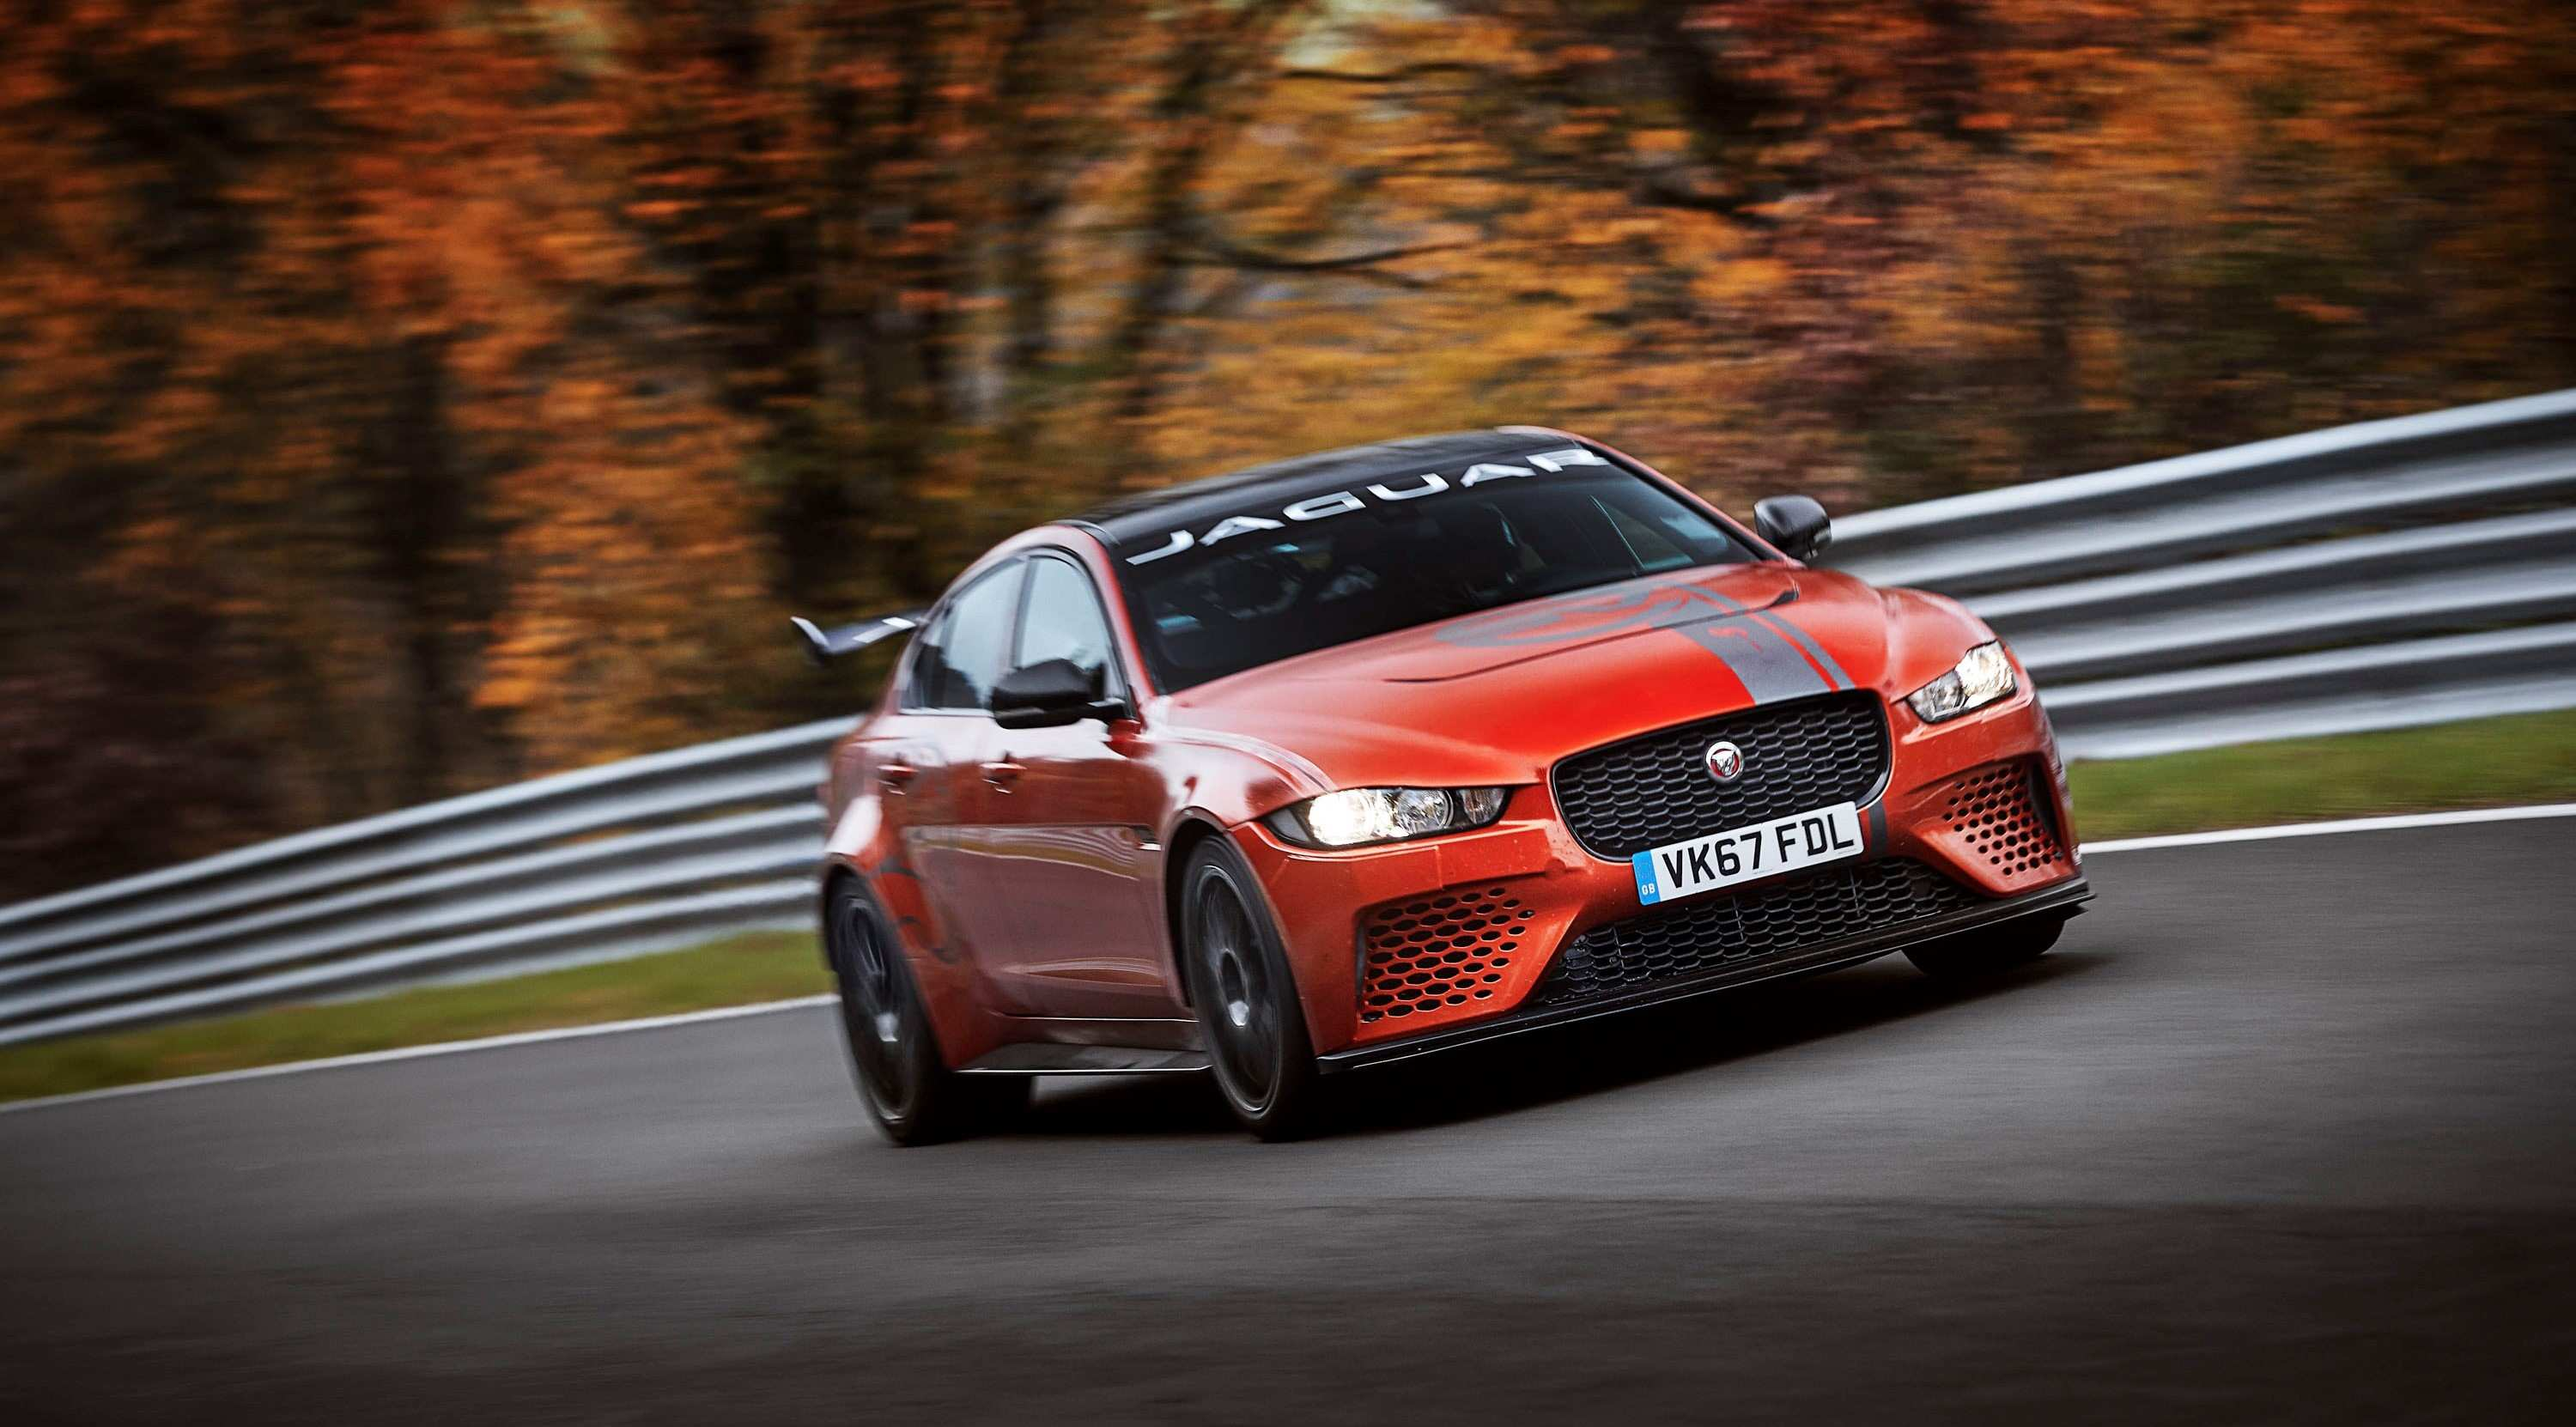 36 Gallery of 2020 Jaguar Xe Sv Project 8 Performance and New Engine with 2020 Jaguar Xe Sv Project 8